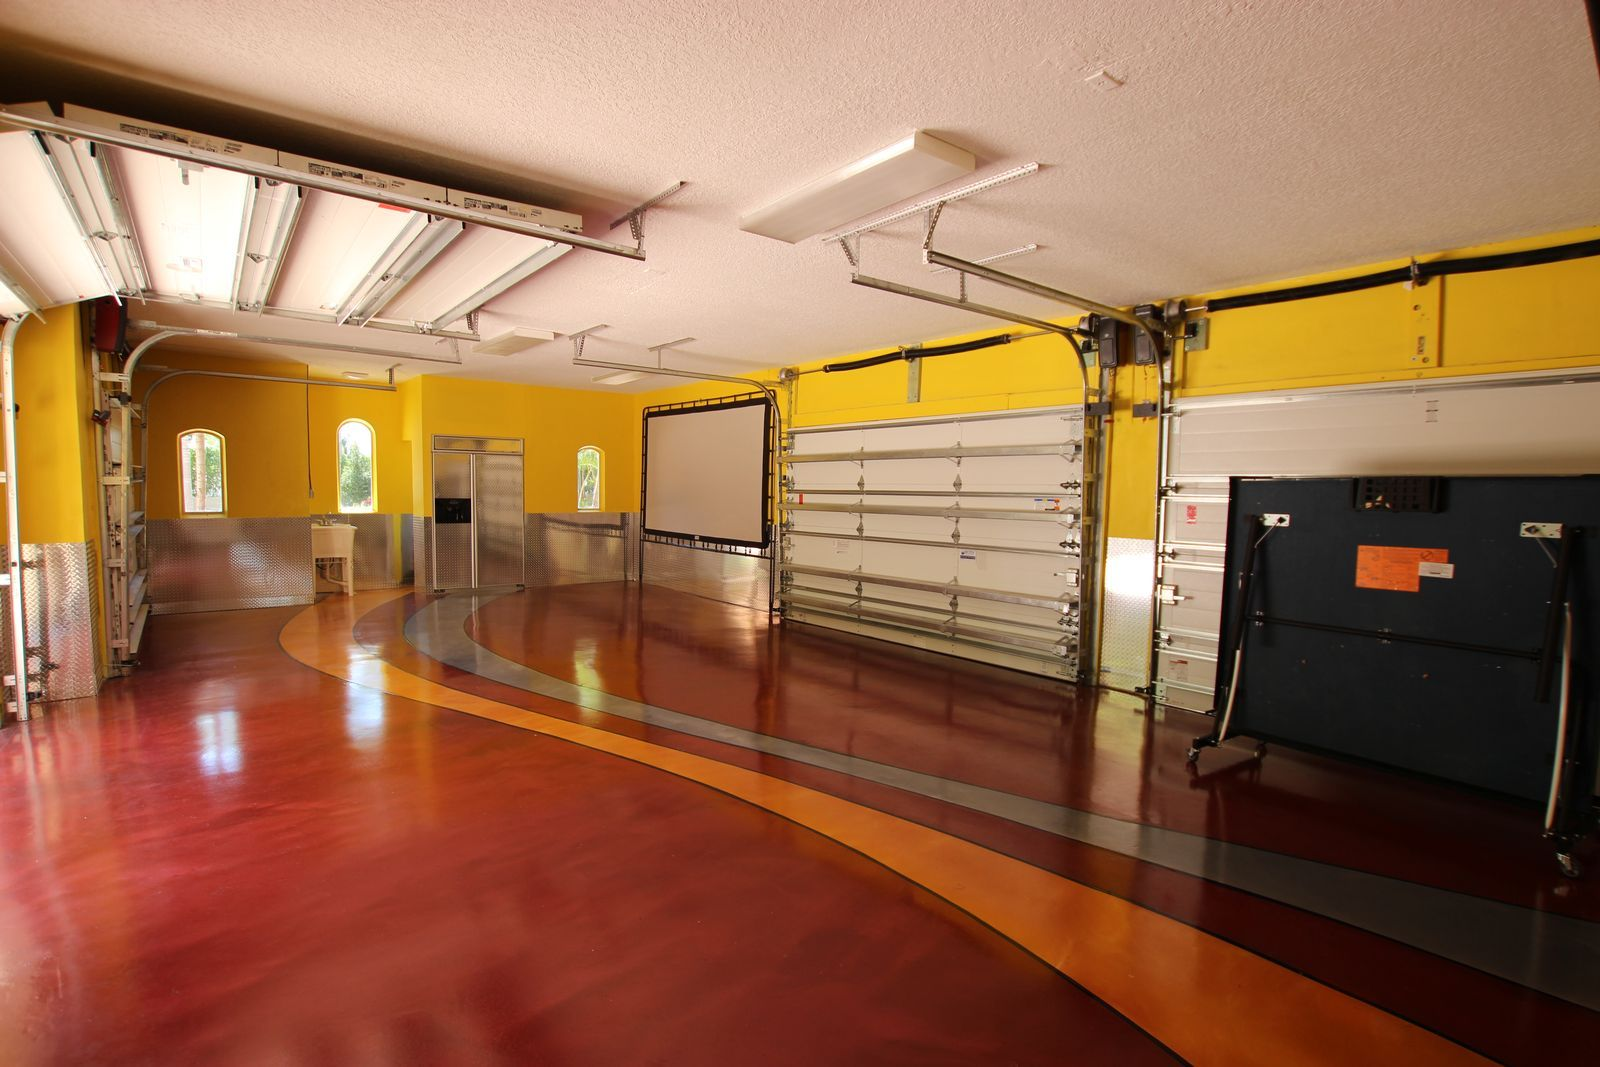 Pin by Rust-Oleum on Garage & Basement Projects | Garage ...